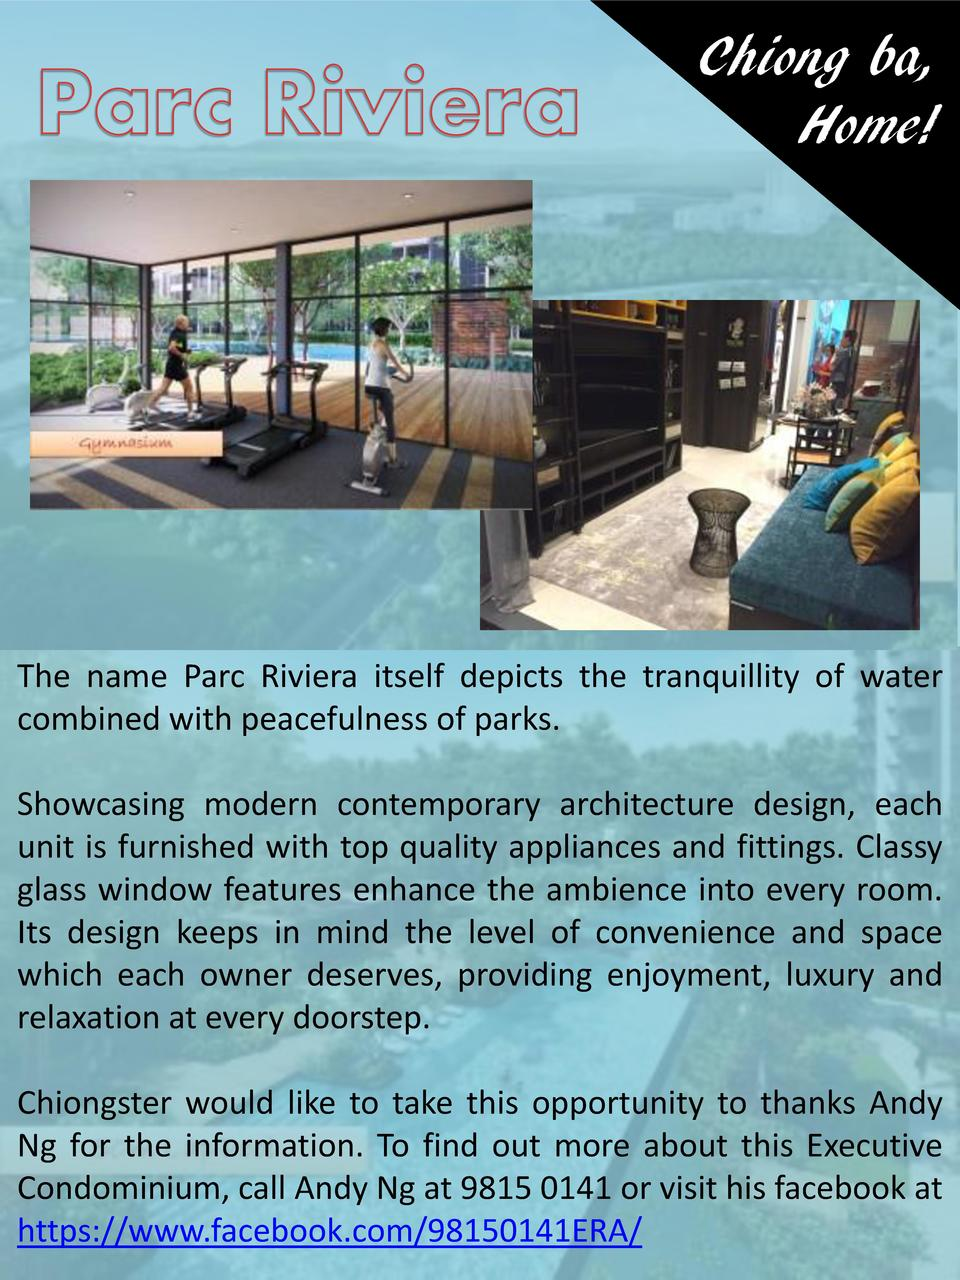 Chiong ba, Home   The name Parc Riviera itself depicts the tranquillity of water combined with peacefulness of parks. Show...